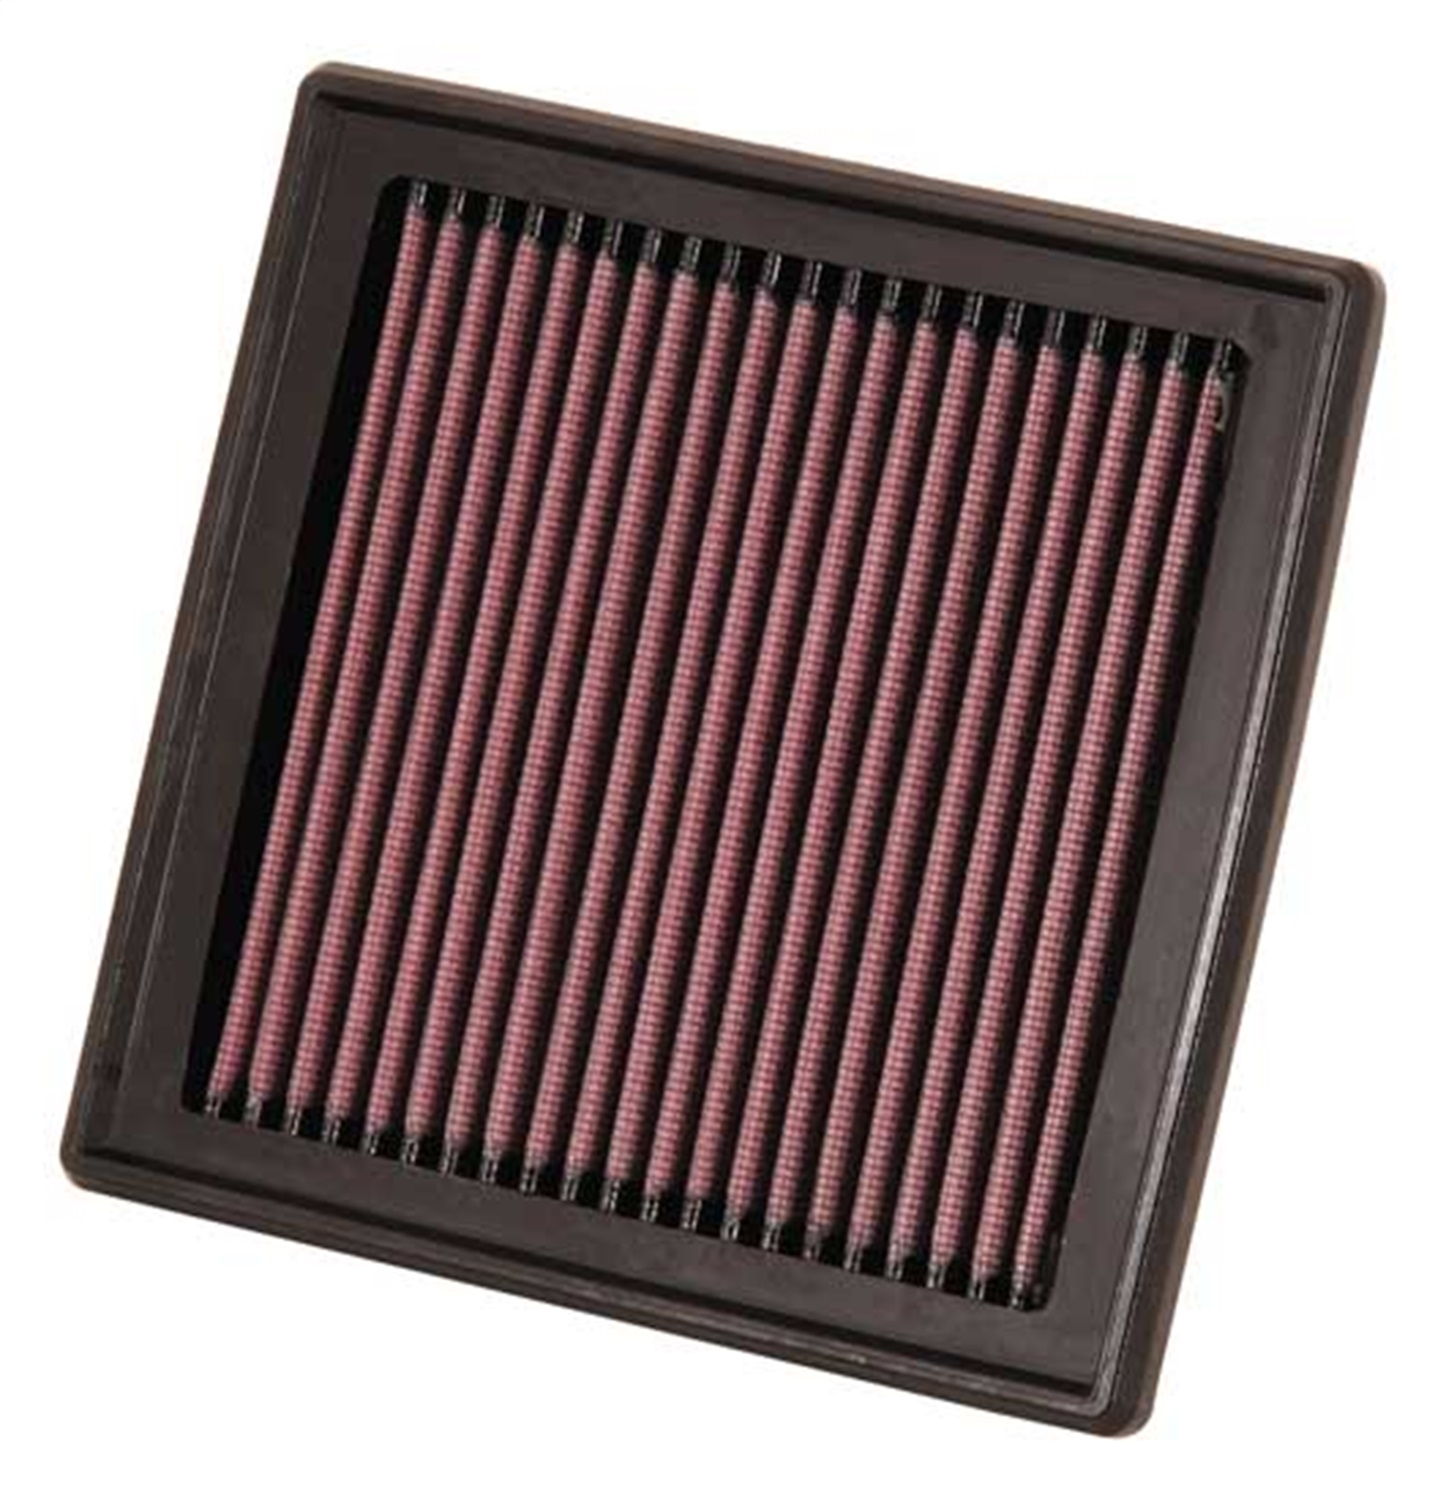 K&N Filters 33-2399 Air Filter Fits 350Z 370Z EX35 EX37 G25 G35 G37 Q50 Q60 QX50 33-2399